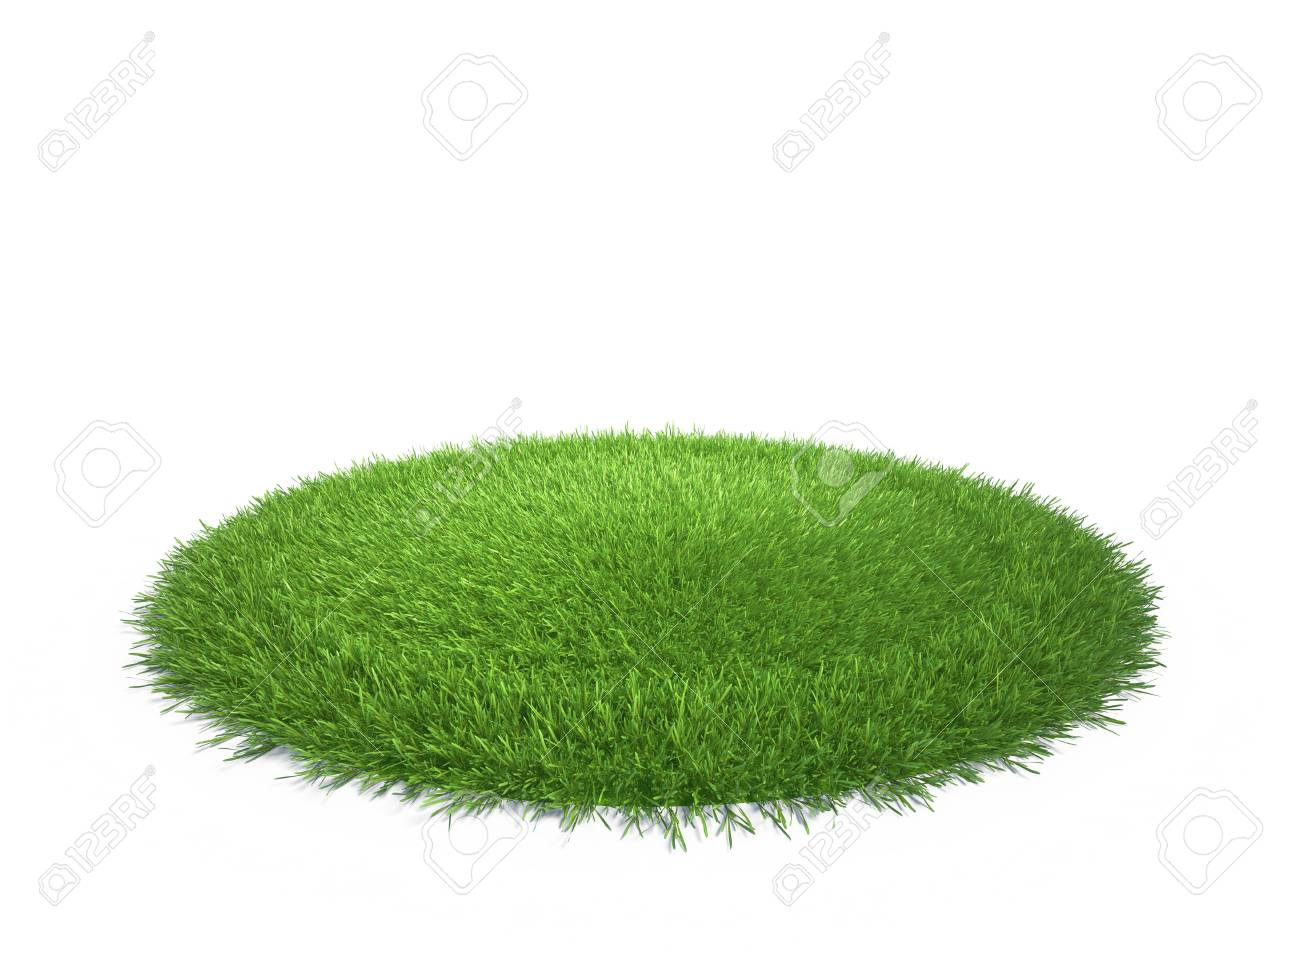 a round piece of cropped grass to be installed - 23823117